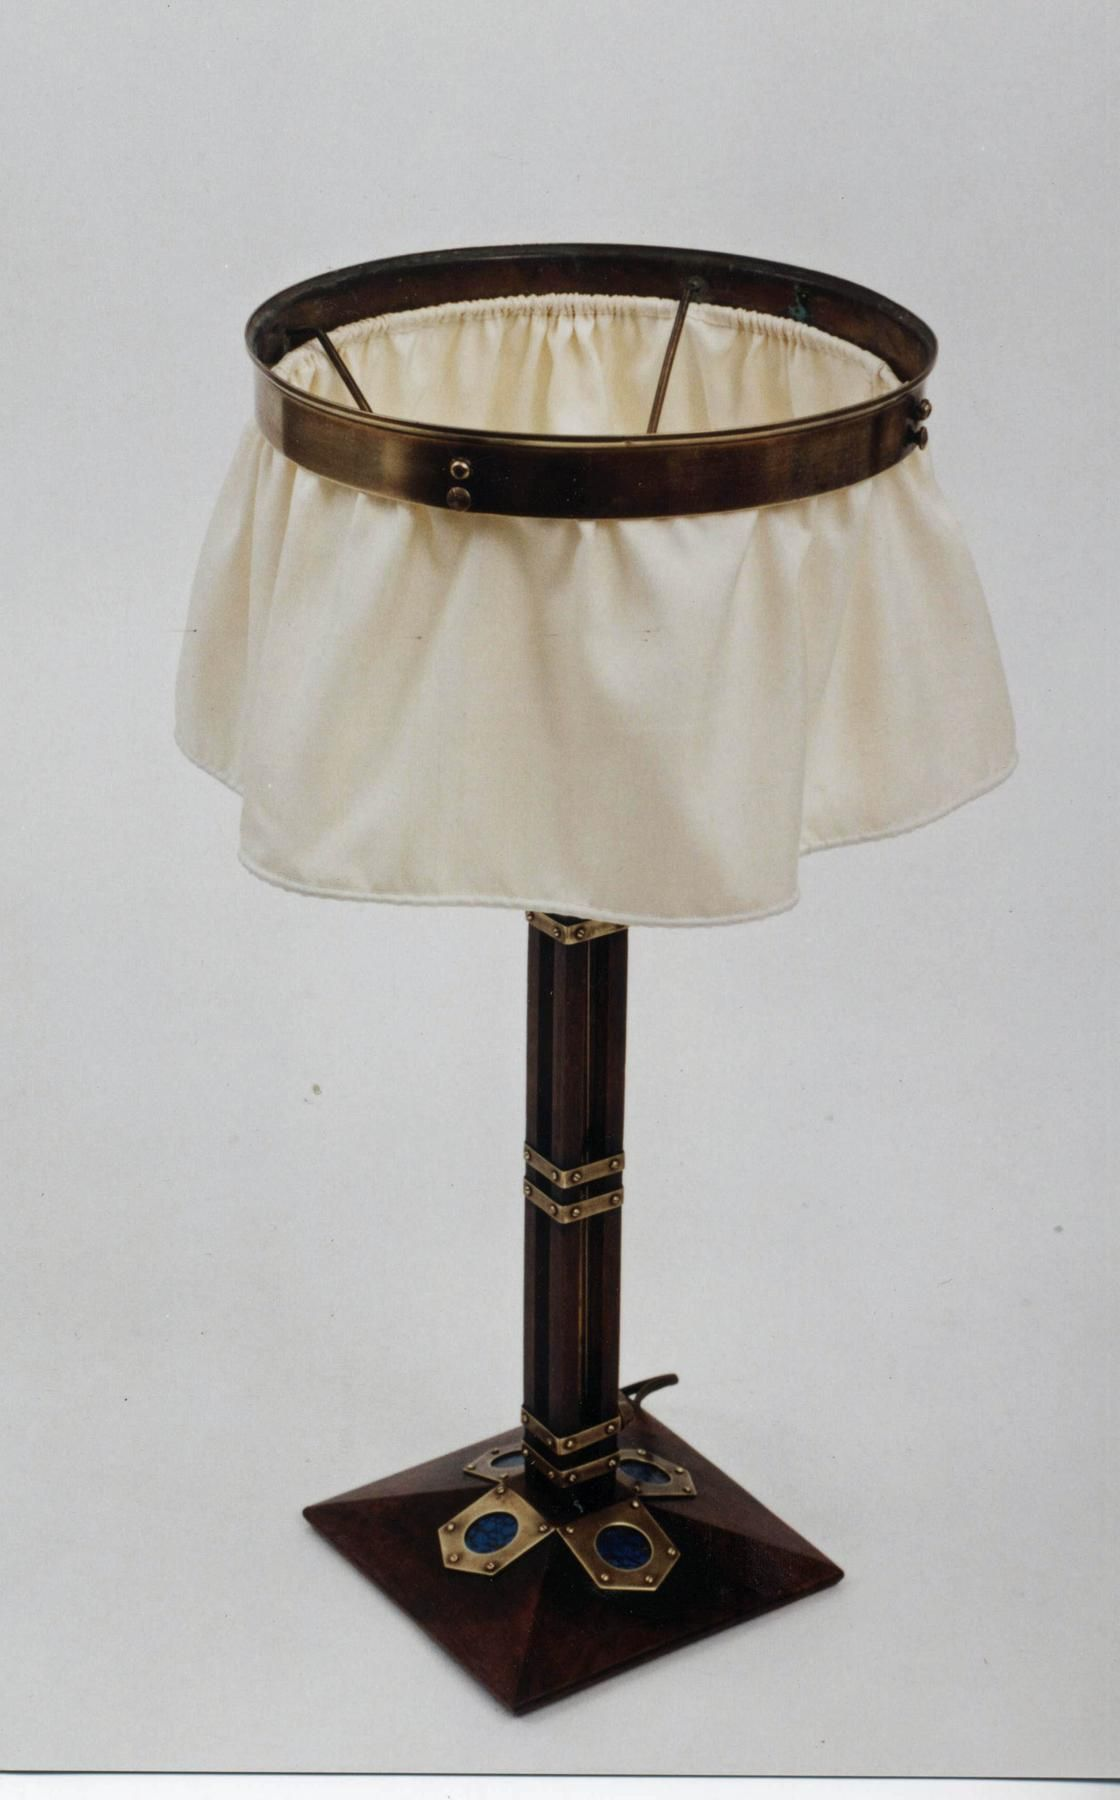 Gustave serrurier bovy 1858 1910 table lamp mahogany brass gustave serrurier bovy 1858 1910 table lamp mahogany brass geotapseo Choice Image